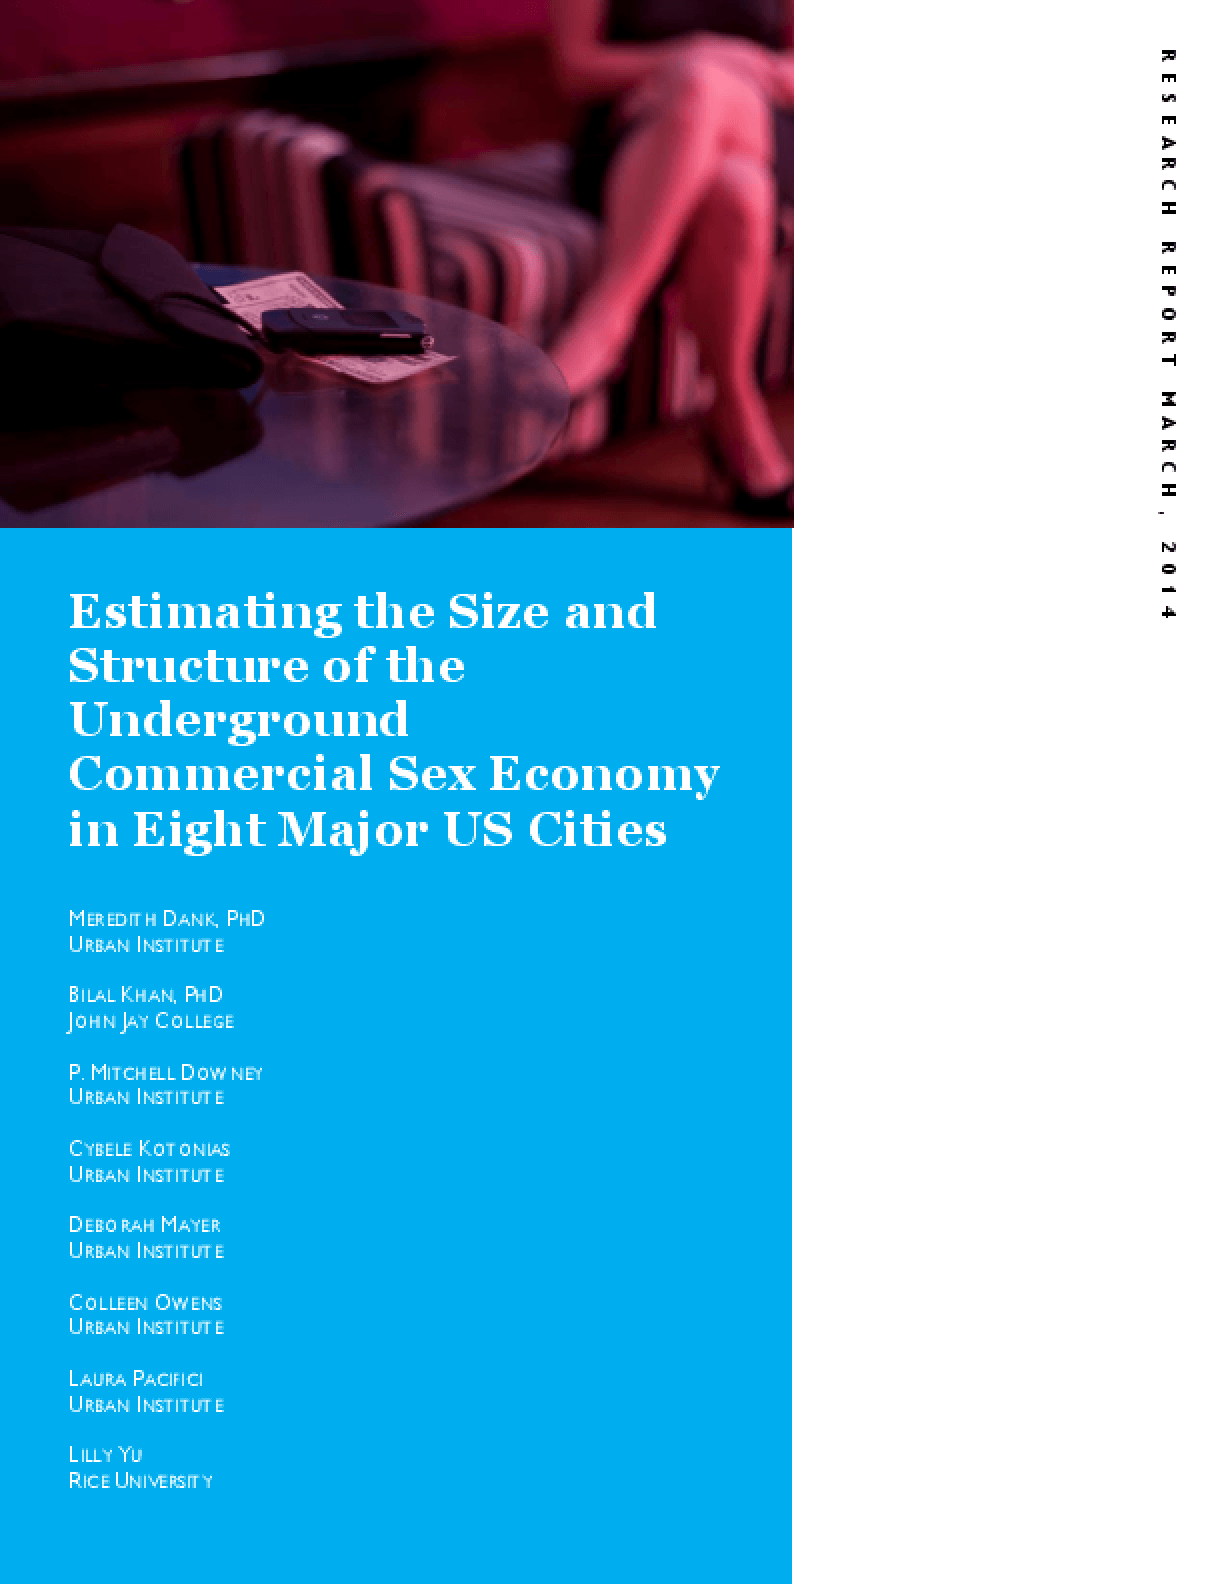 Estimating the Size and Structure of the Underground Commercial Sex Economy in Eight Major U.S. Cities